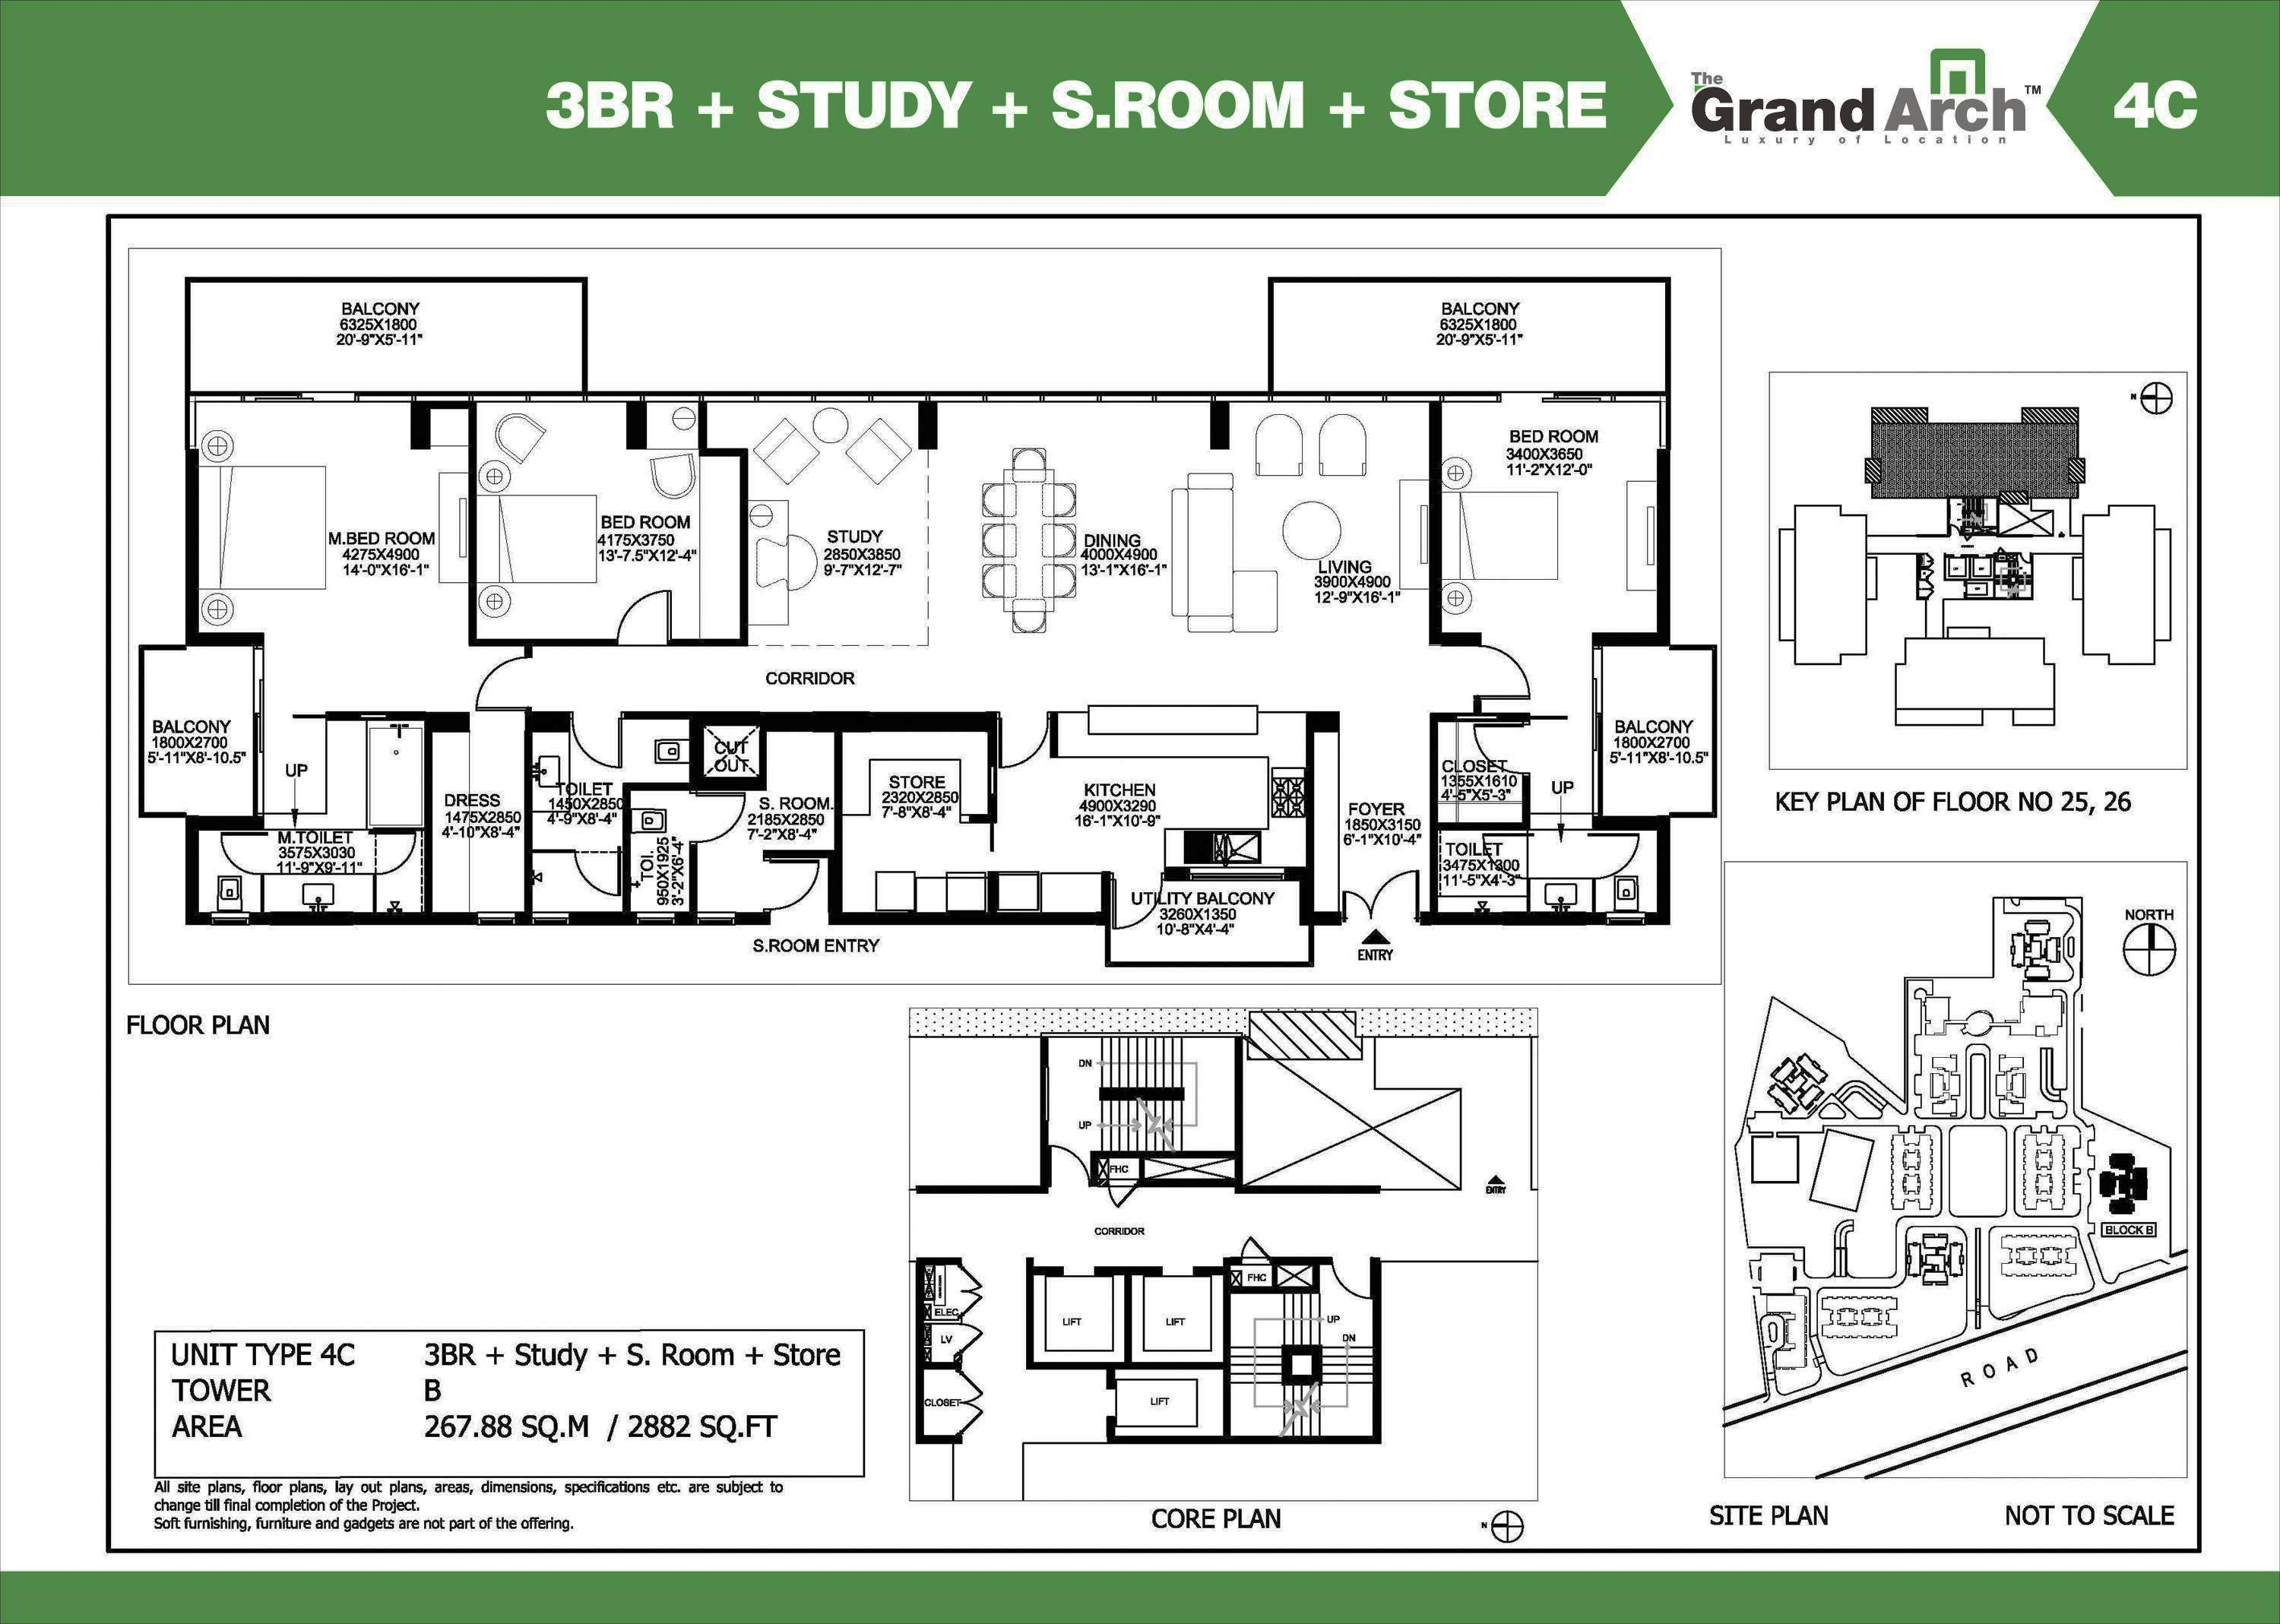 Ireo Grand Arch Floor Plan Floorplan In